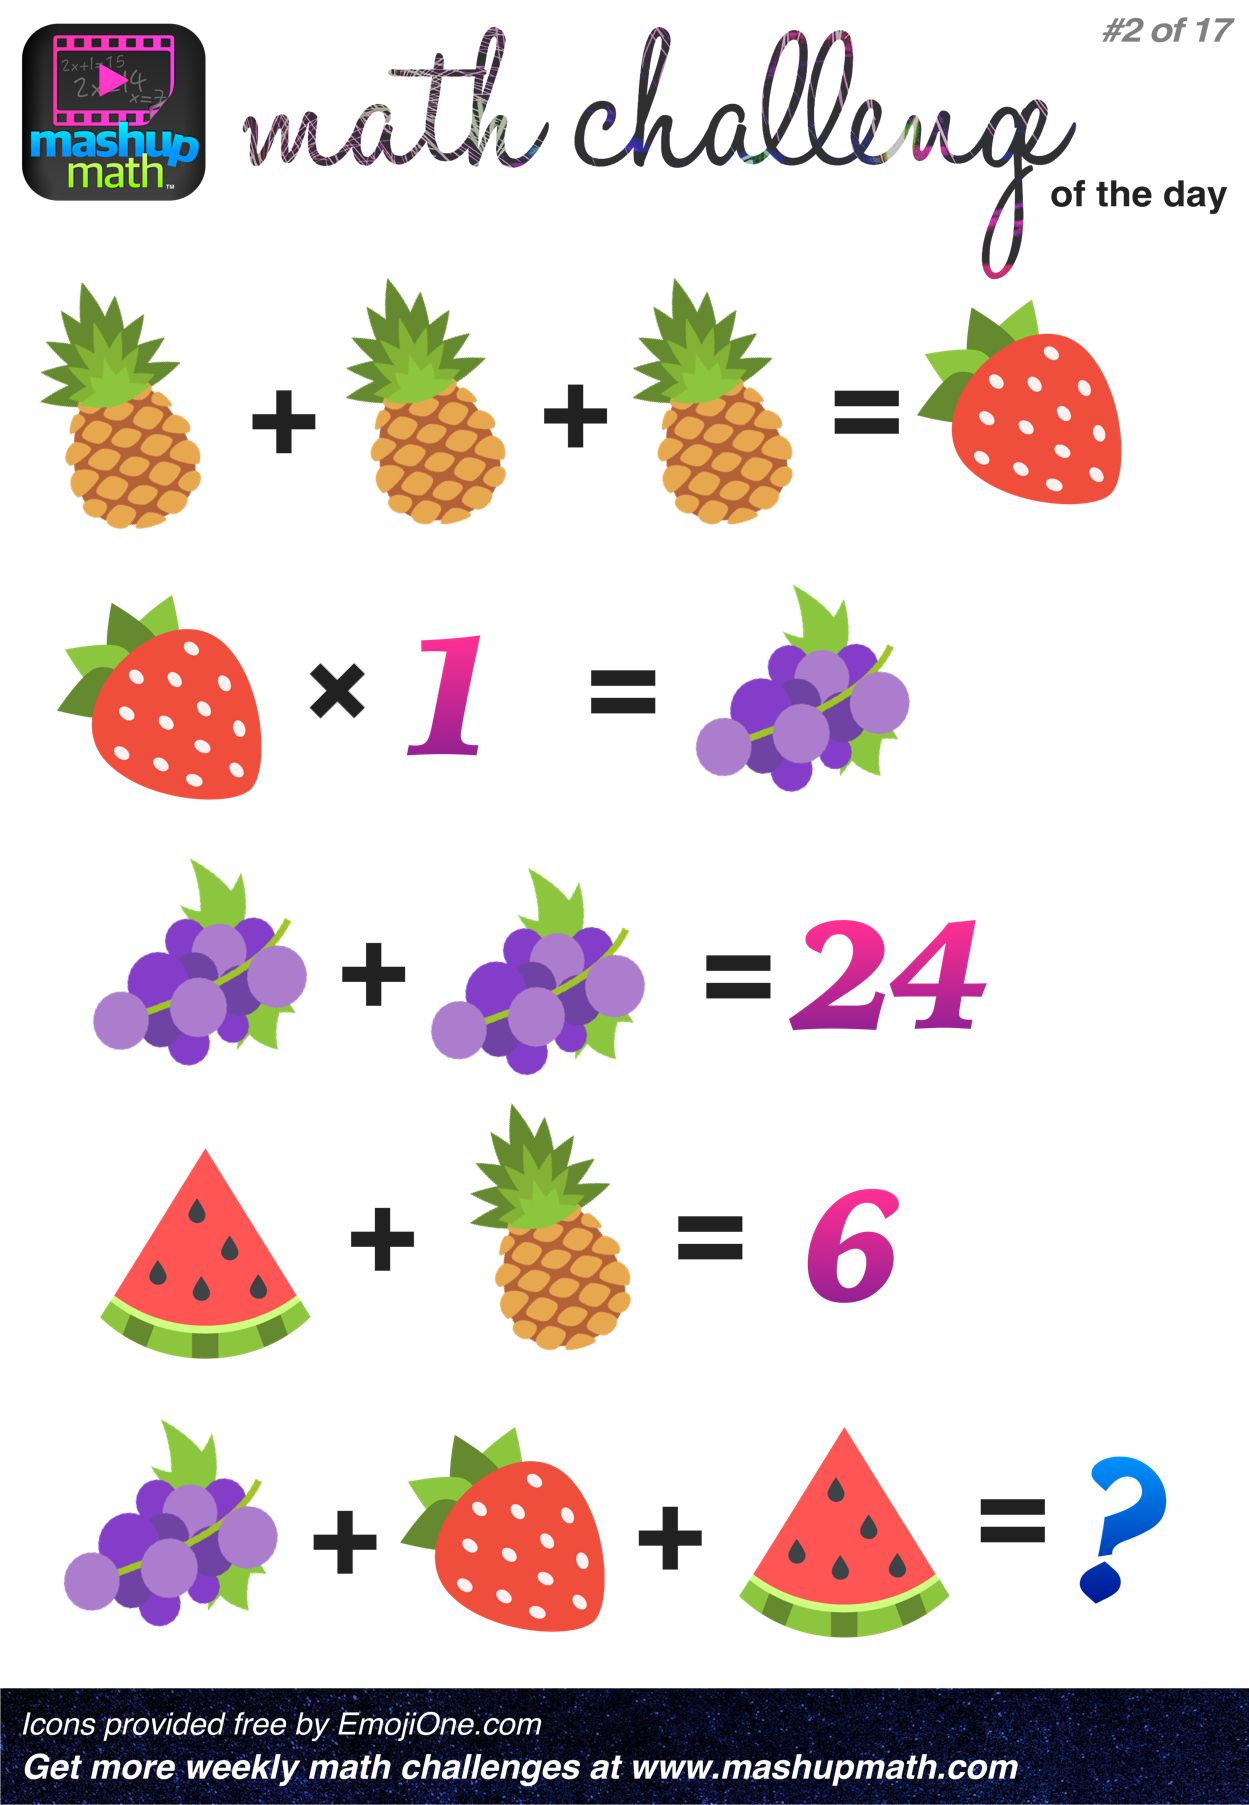 Are You Ready For 17 Awesome New Math Challenges